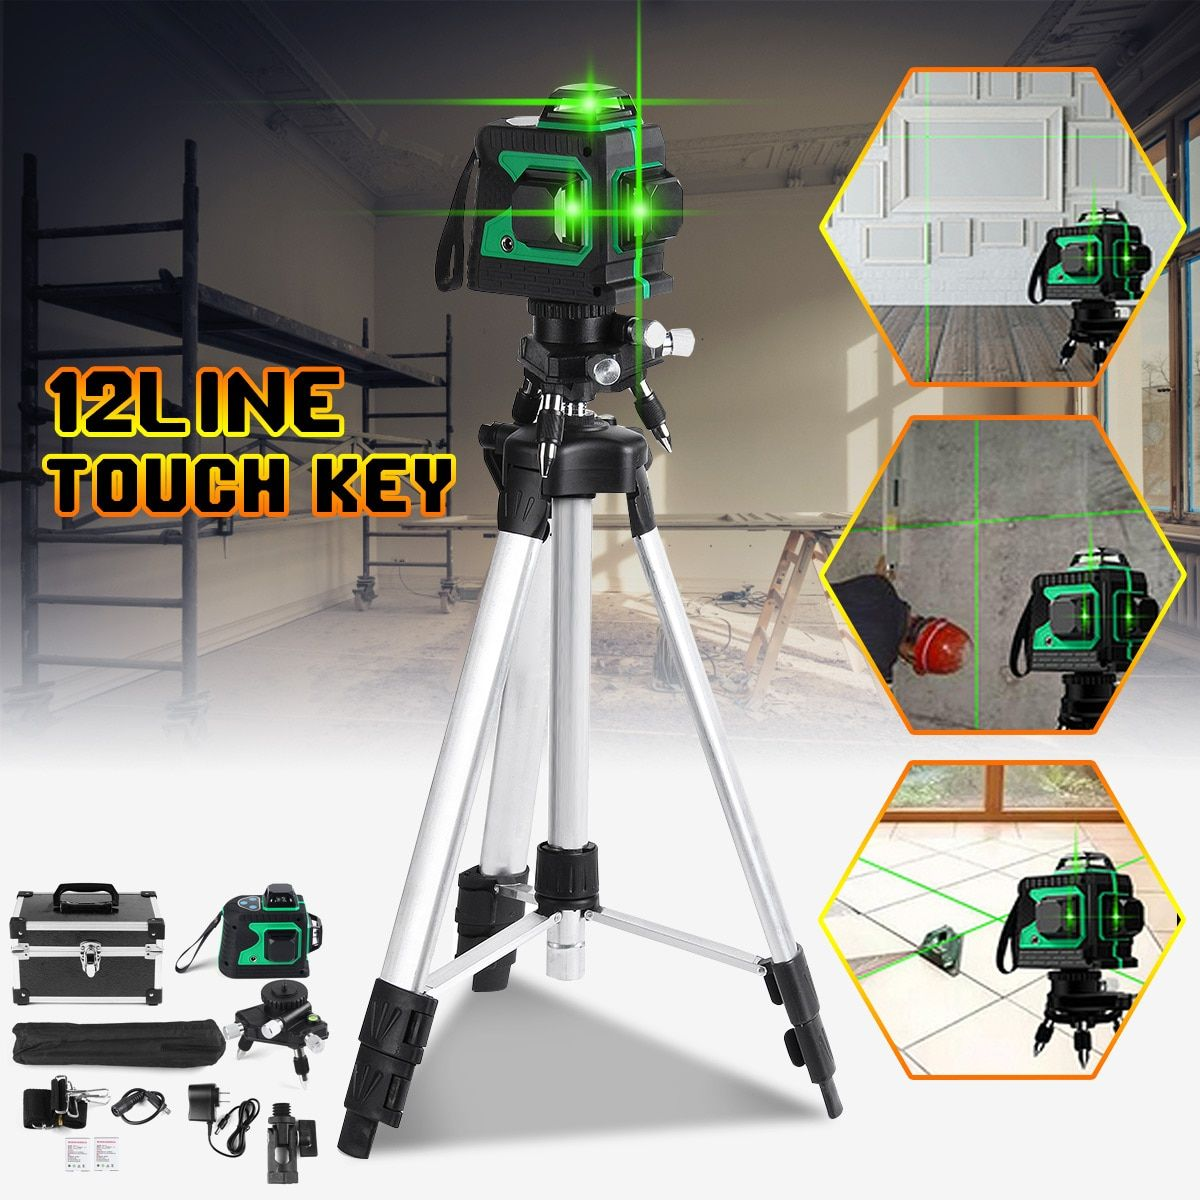 12 Line 3D Green Light Laser Level Self-Leveling Measure 360 Horizontal Vertical Cross Super Powerful Laser Beam w/Tripod Stand